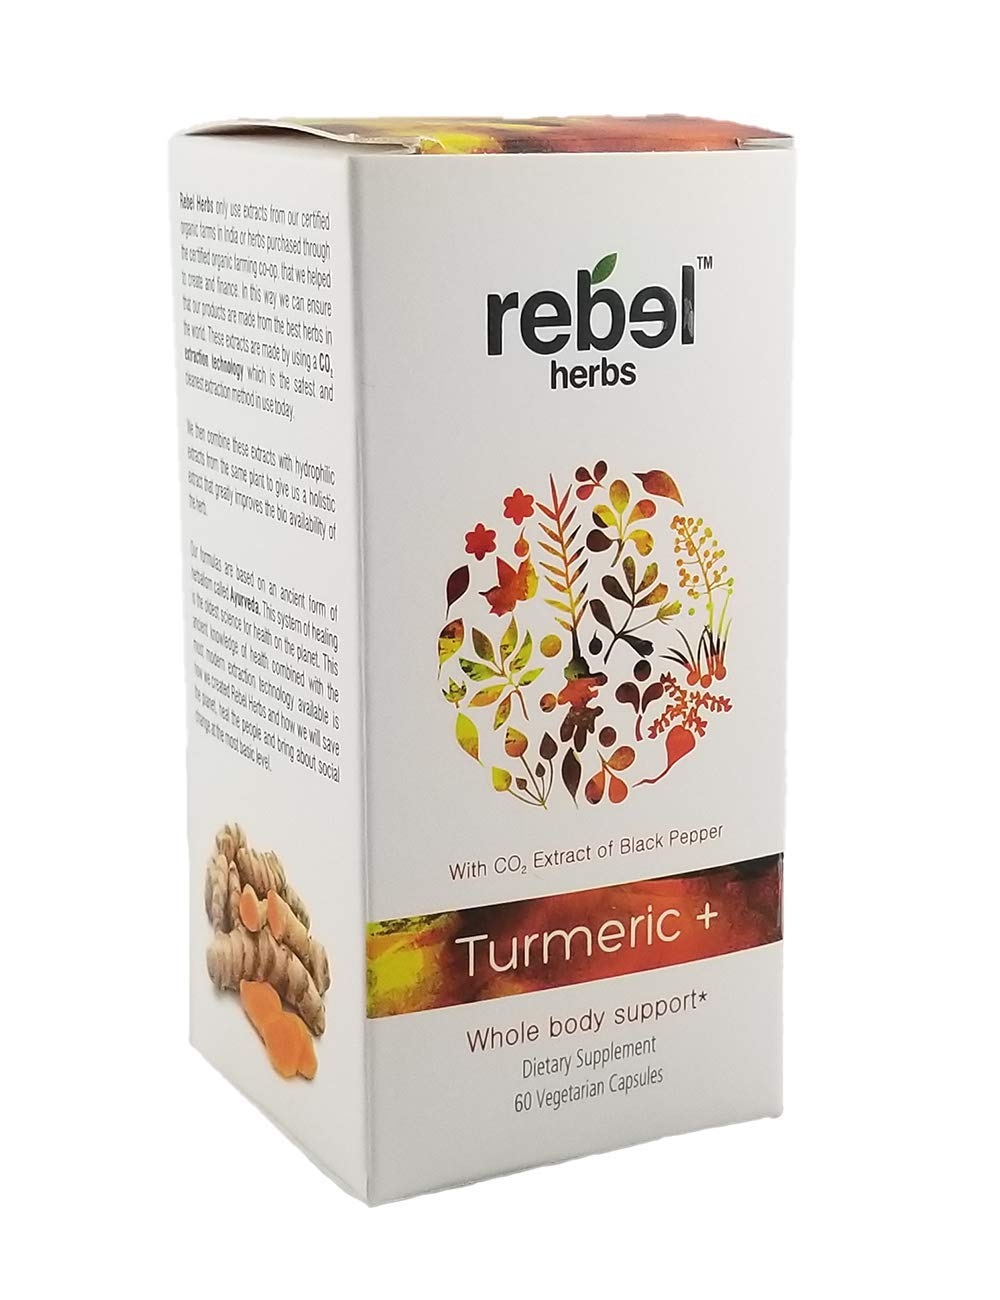 Rebel Herbs RH1290 Turmeric For Body Support, + 60 capsules by Rebel Herbs (Image #1)